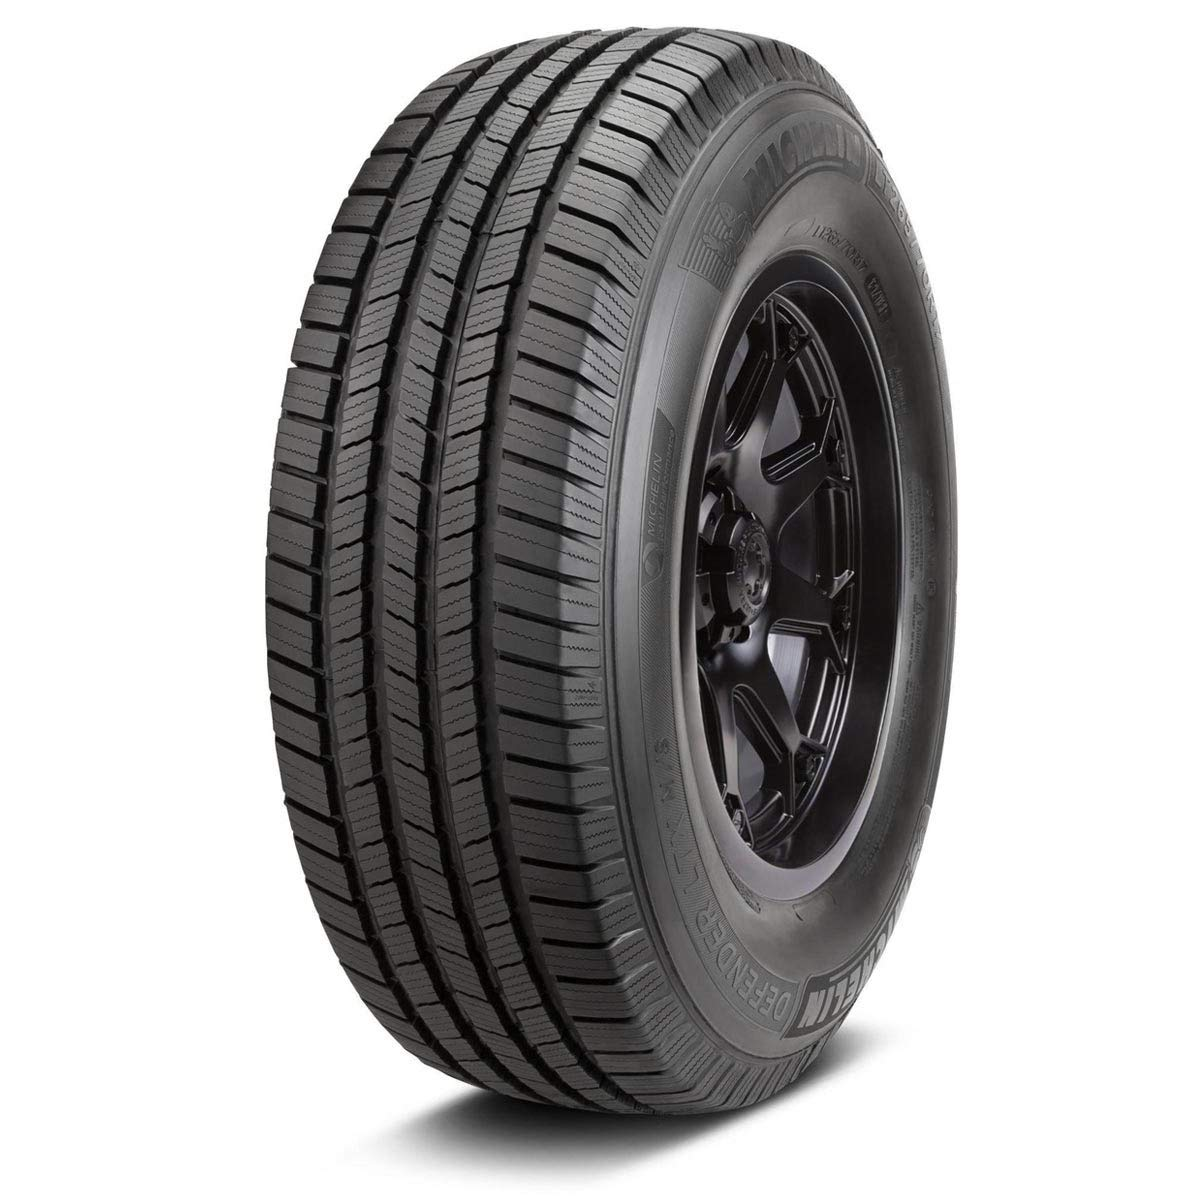 Michelin Defender Reviews >> Michelin Defender Ltx M S Review Truck Tire Reviews